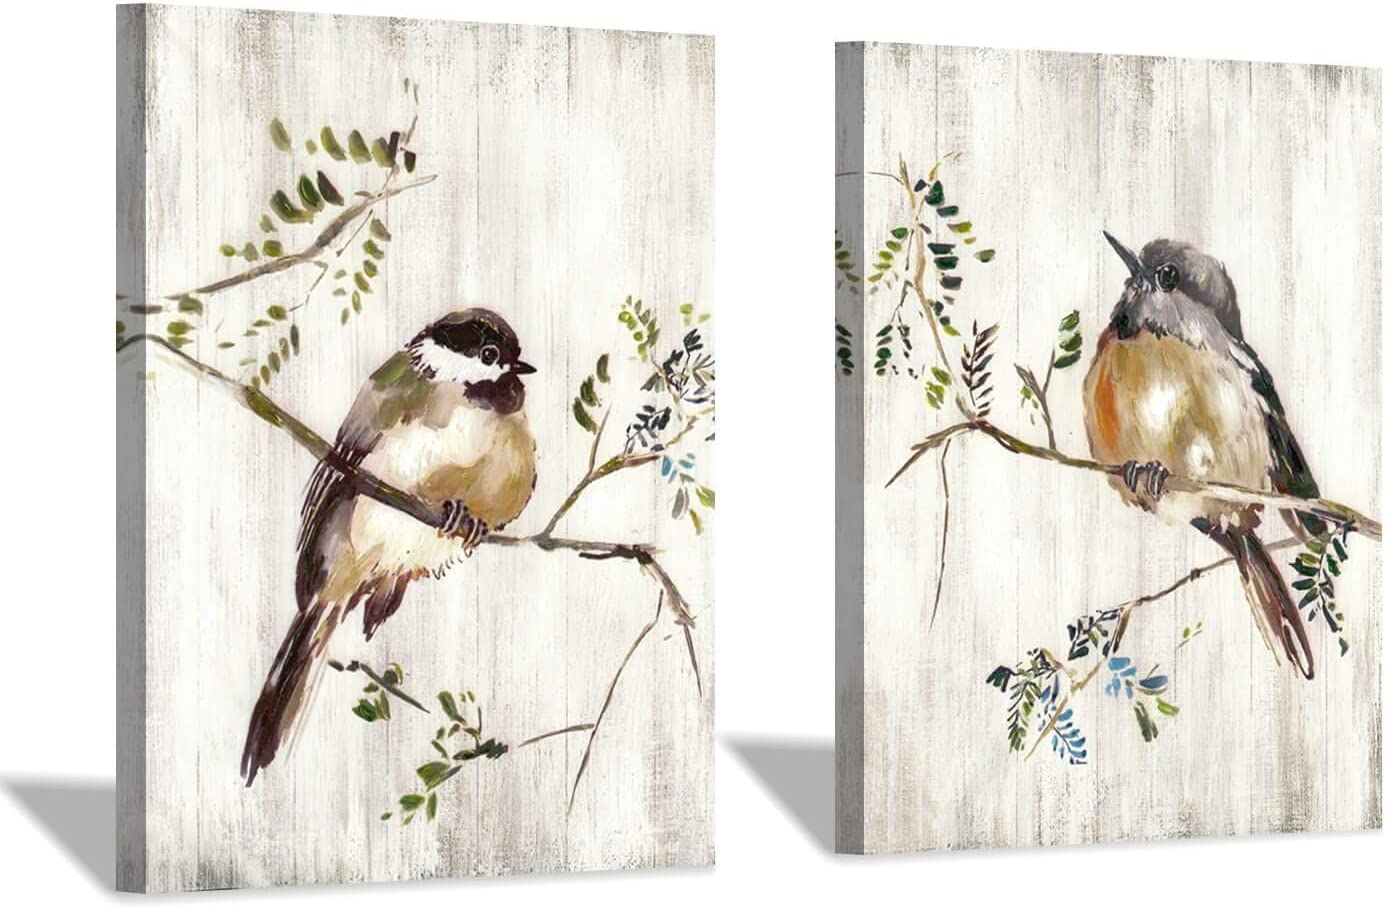 "Birds Canvas Wall Art Print: Nature Wild Animal Birds Stand on Twig with Wood Texture Background Picture for Kids Room (24"" x 18"" x 2 Panels)"